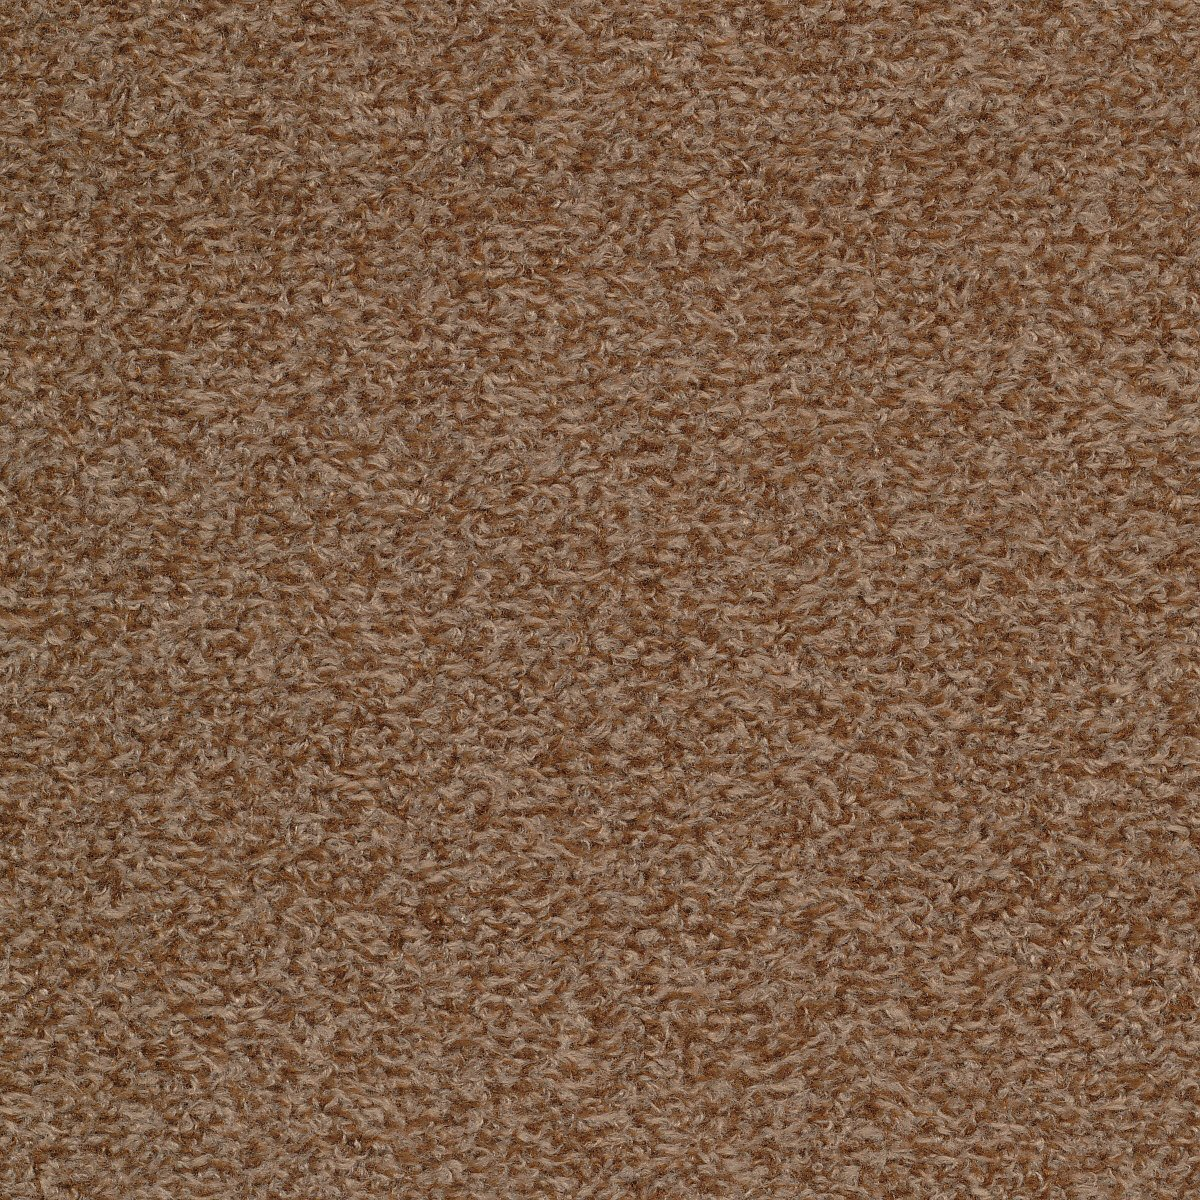 Moda Fireside 60 Polyester Wide Back - Two Tone Mocha/Chocolate (Min order of 1m)